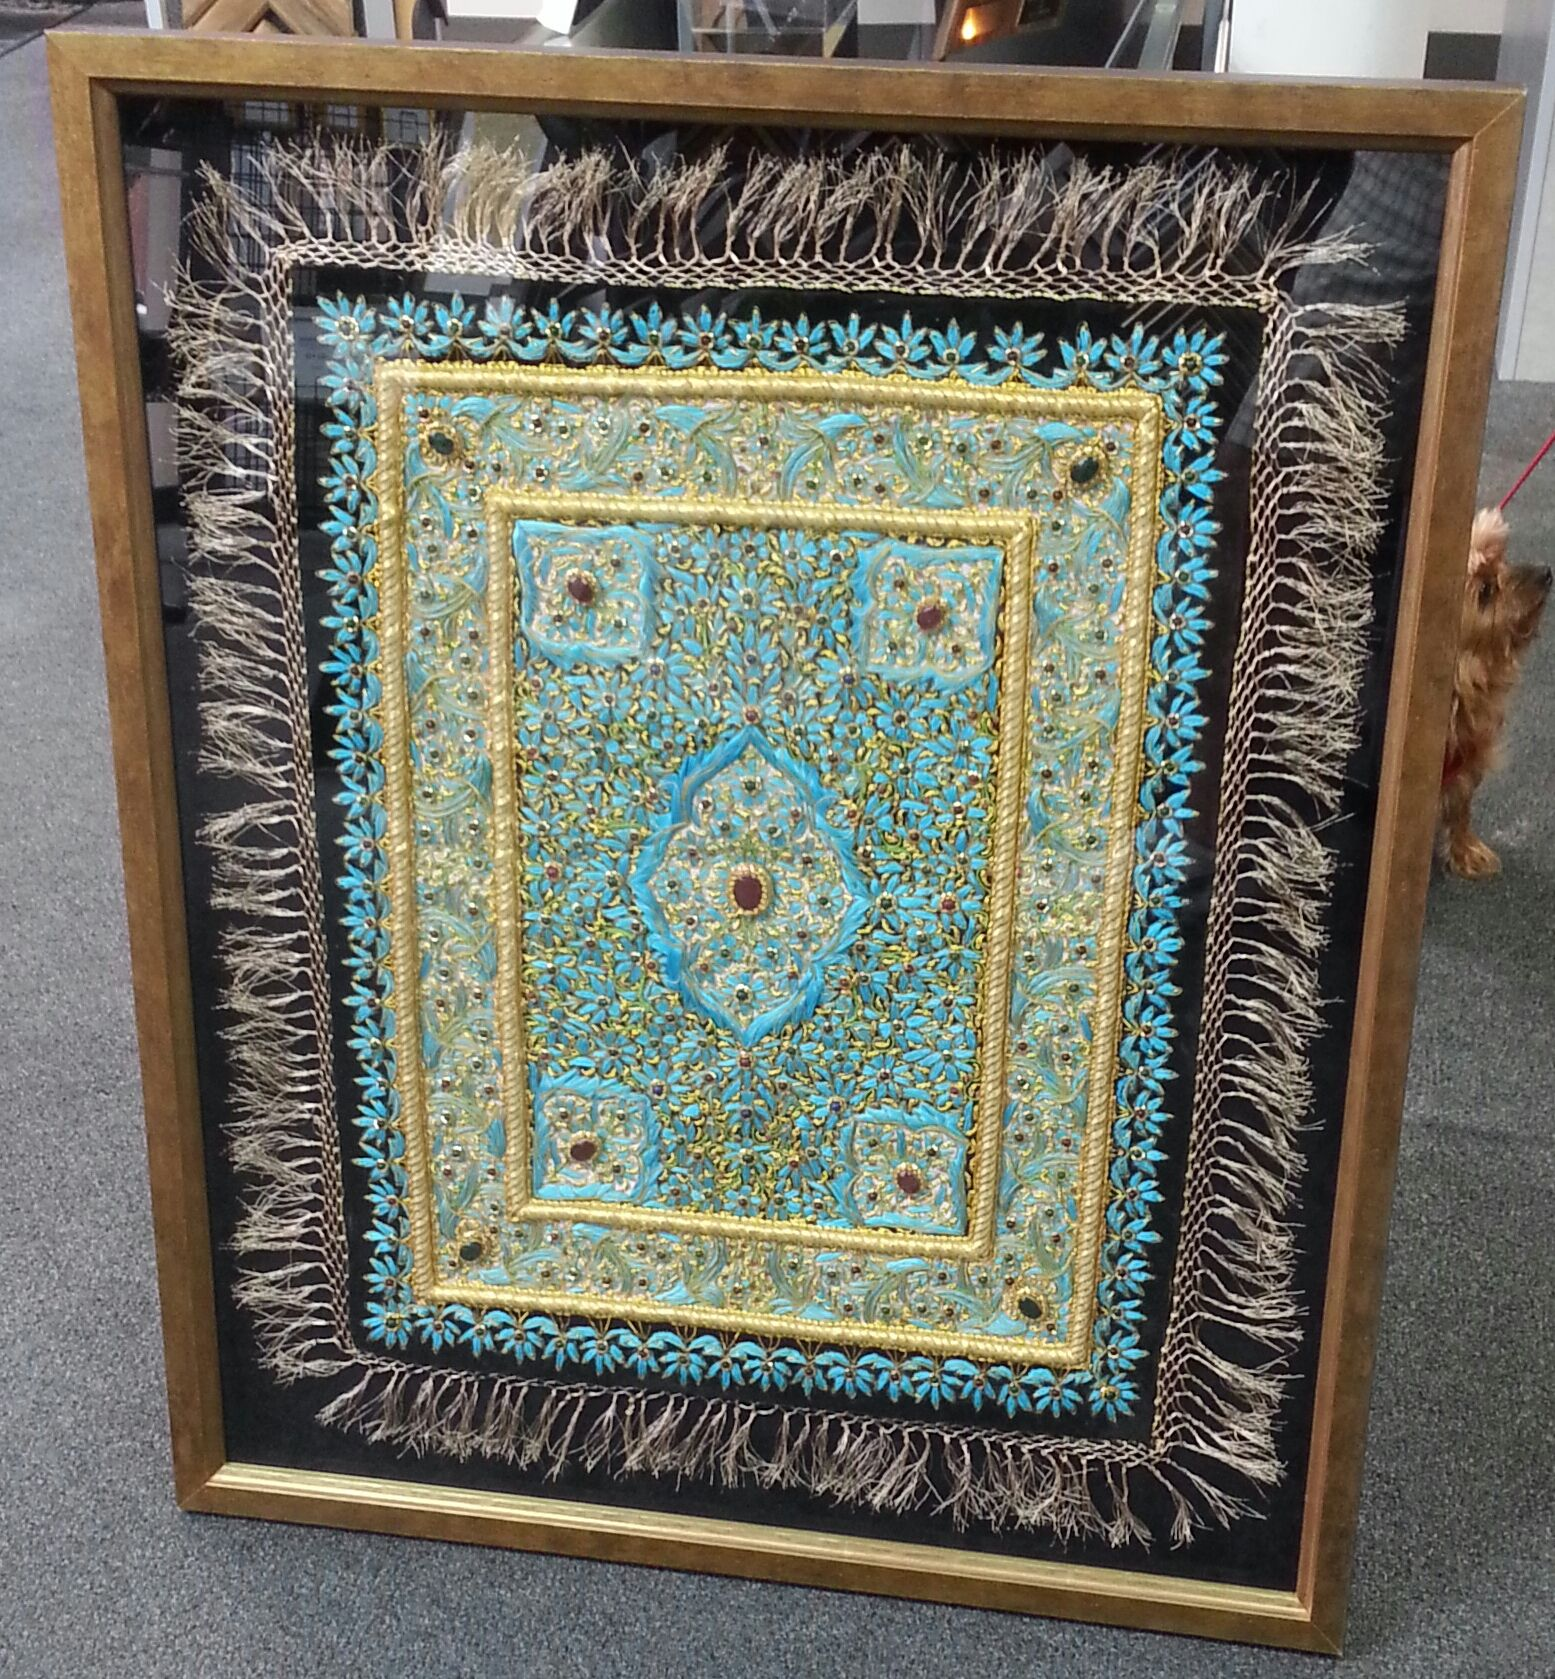 Custom Framed Persian Rug In A Shadowbox By Fastframe Of Lodo